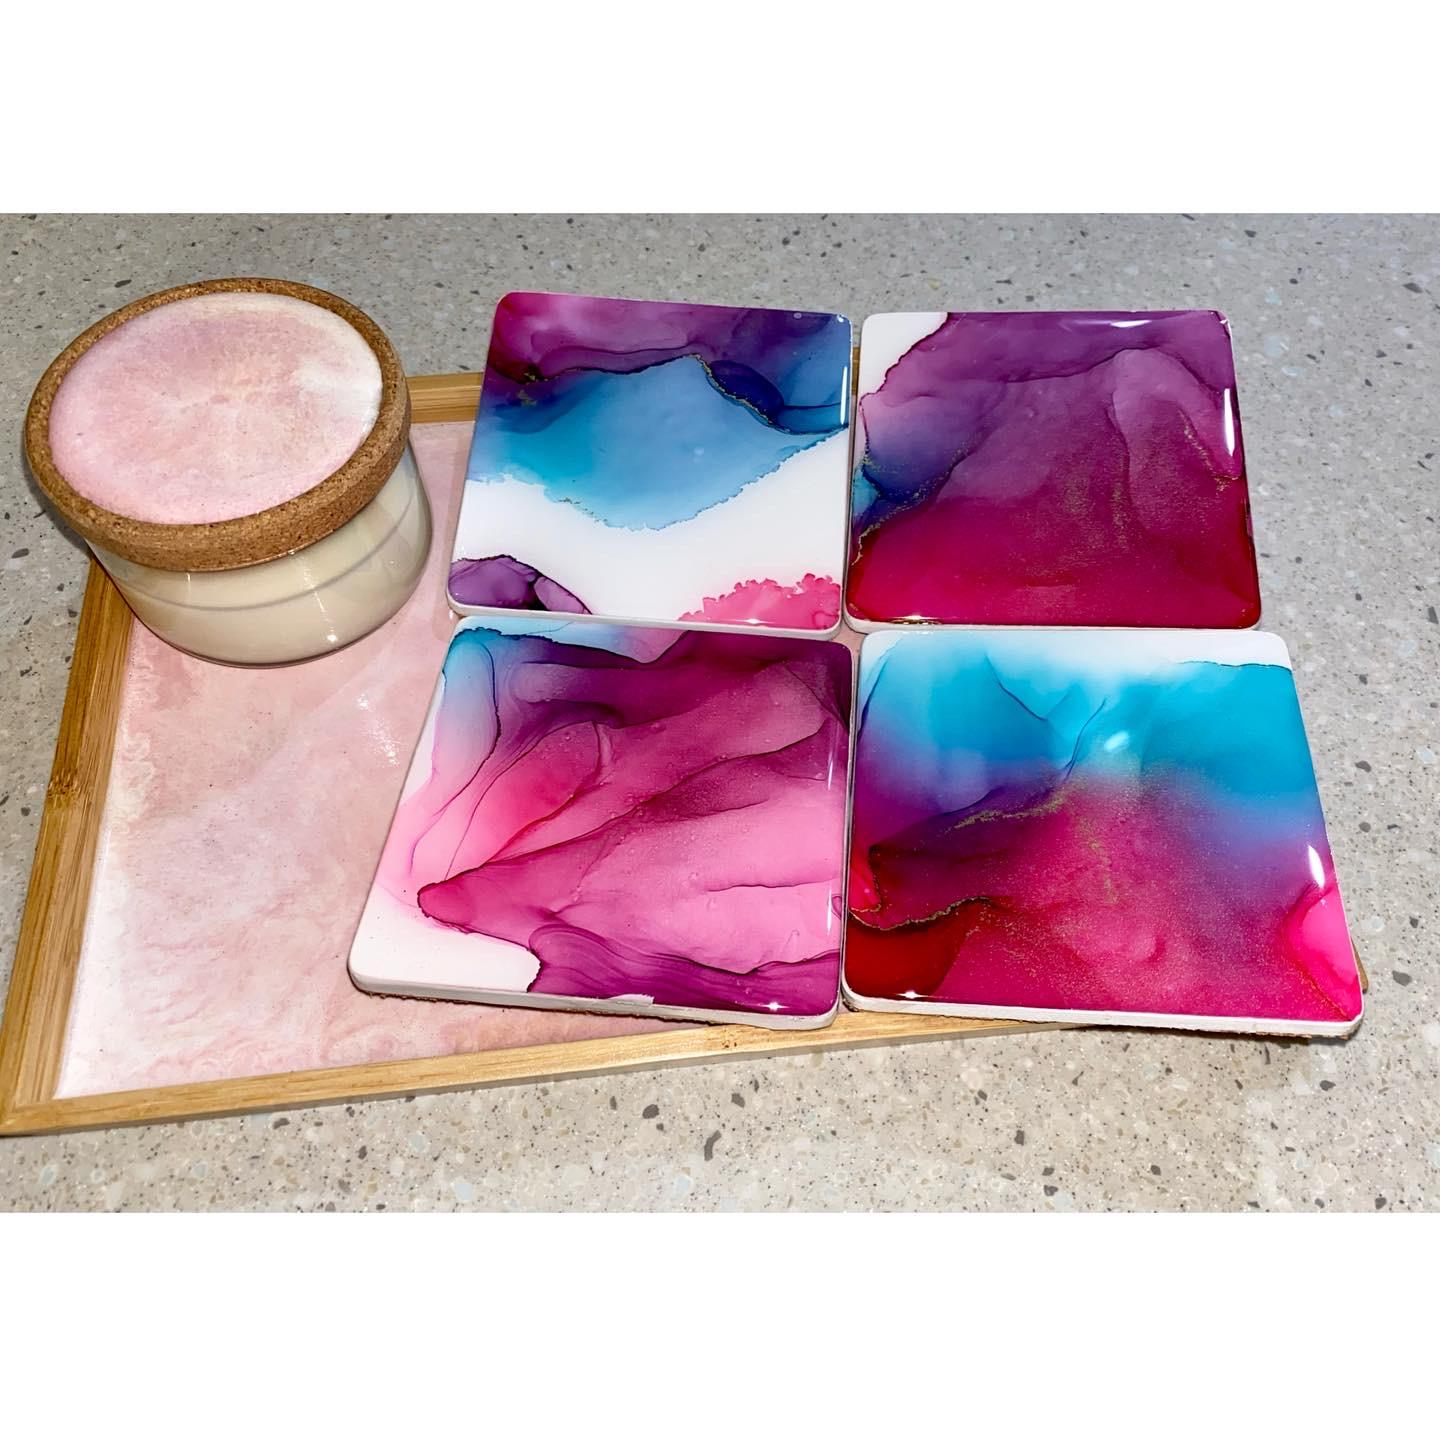 Serving tray, coasters and candles